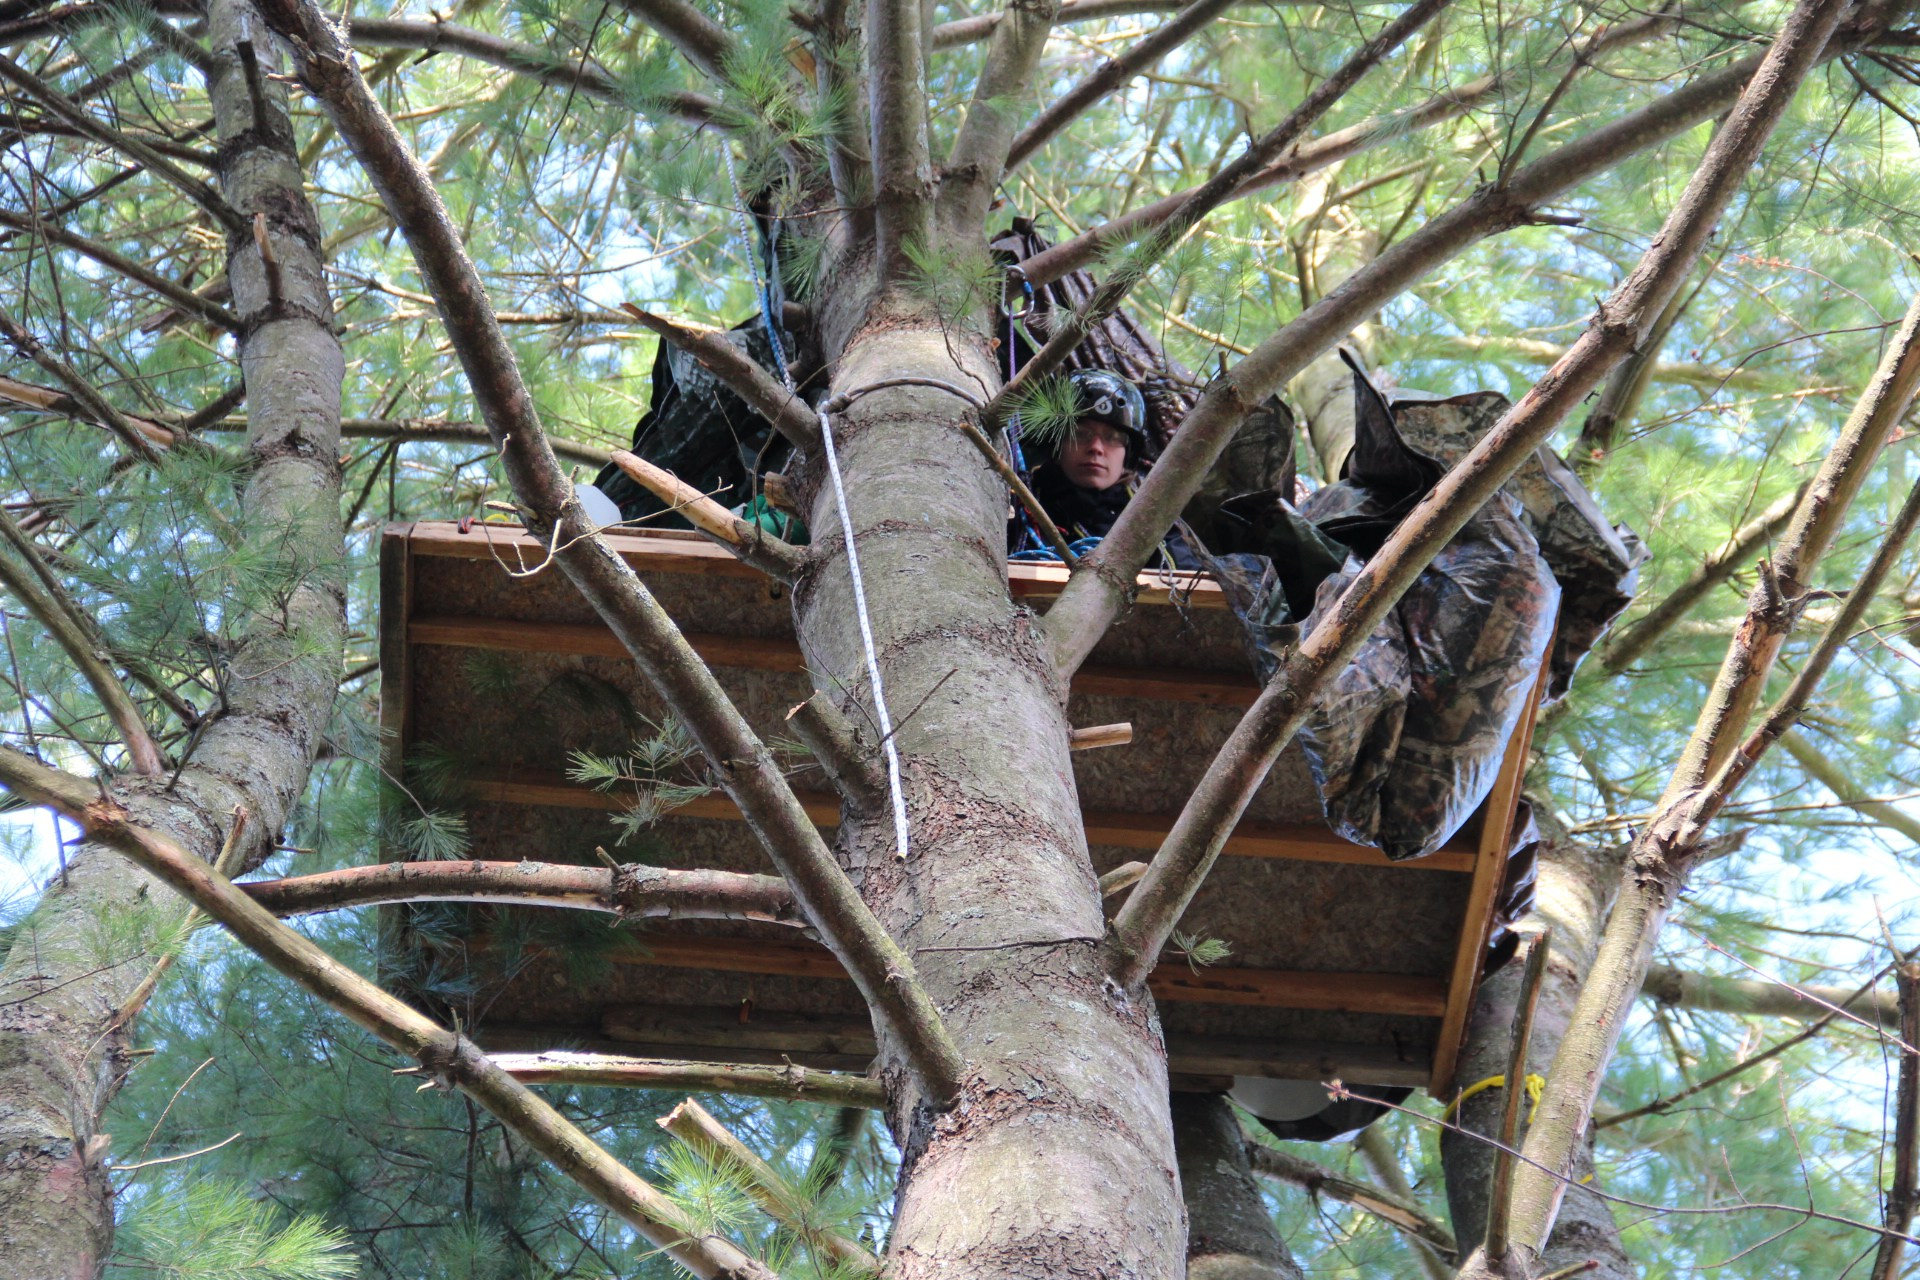 Pipeline protestor takes to the trees to stop construction